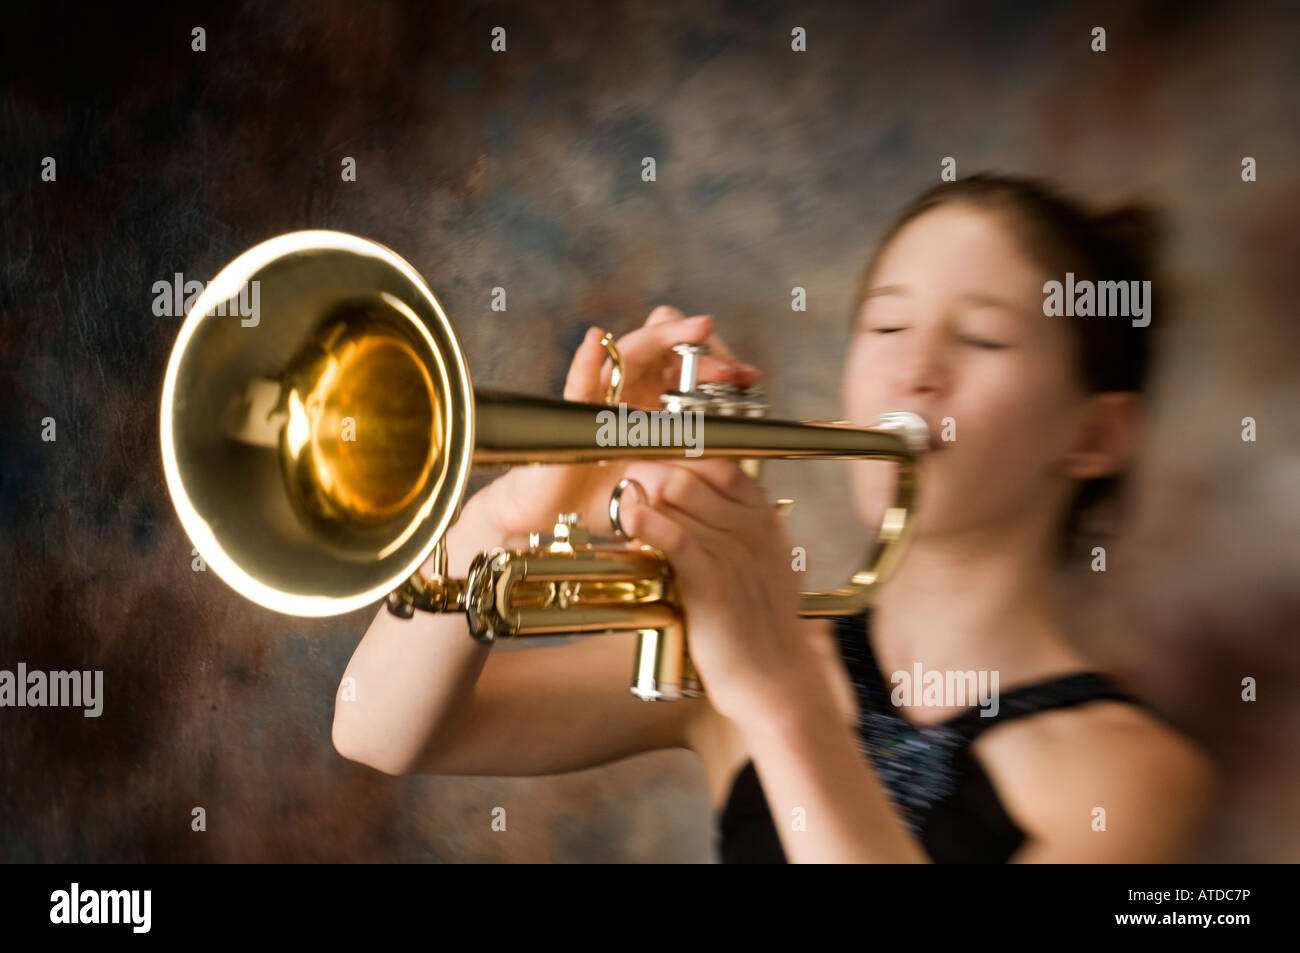 young pre teen girl female woman blowing playing trumpet music instrument with passion and emotion - Stock Image